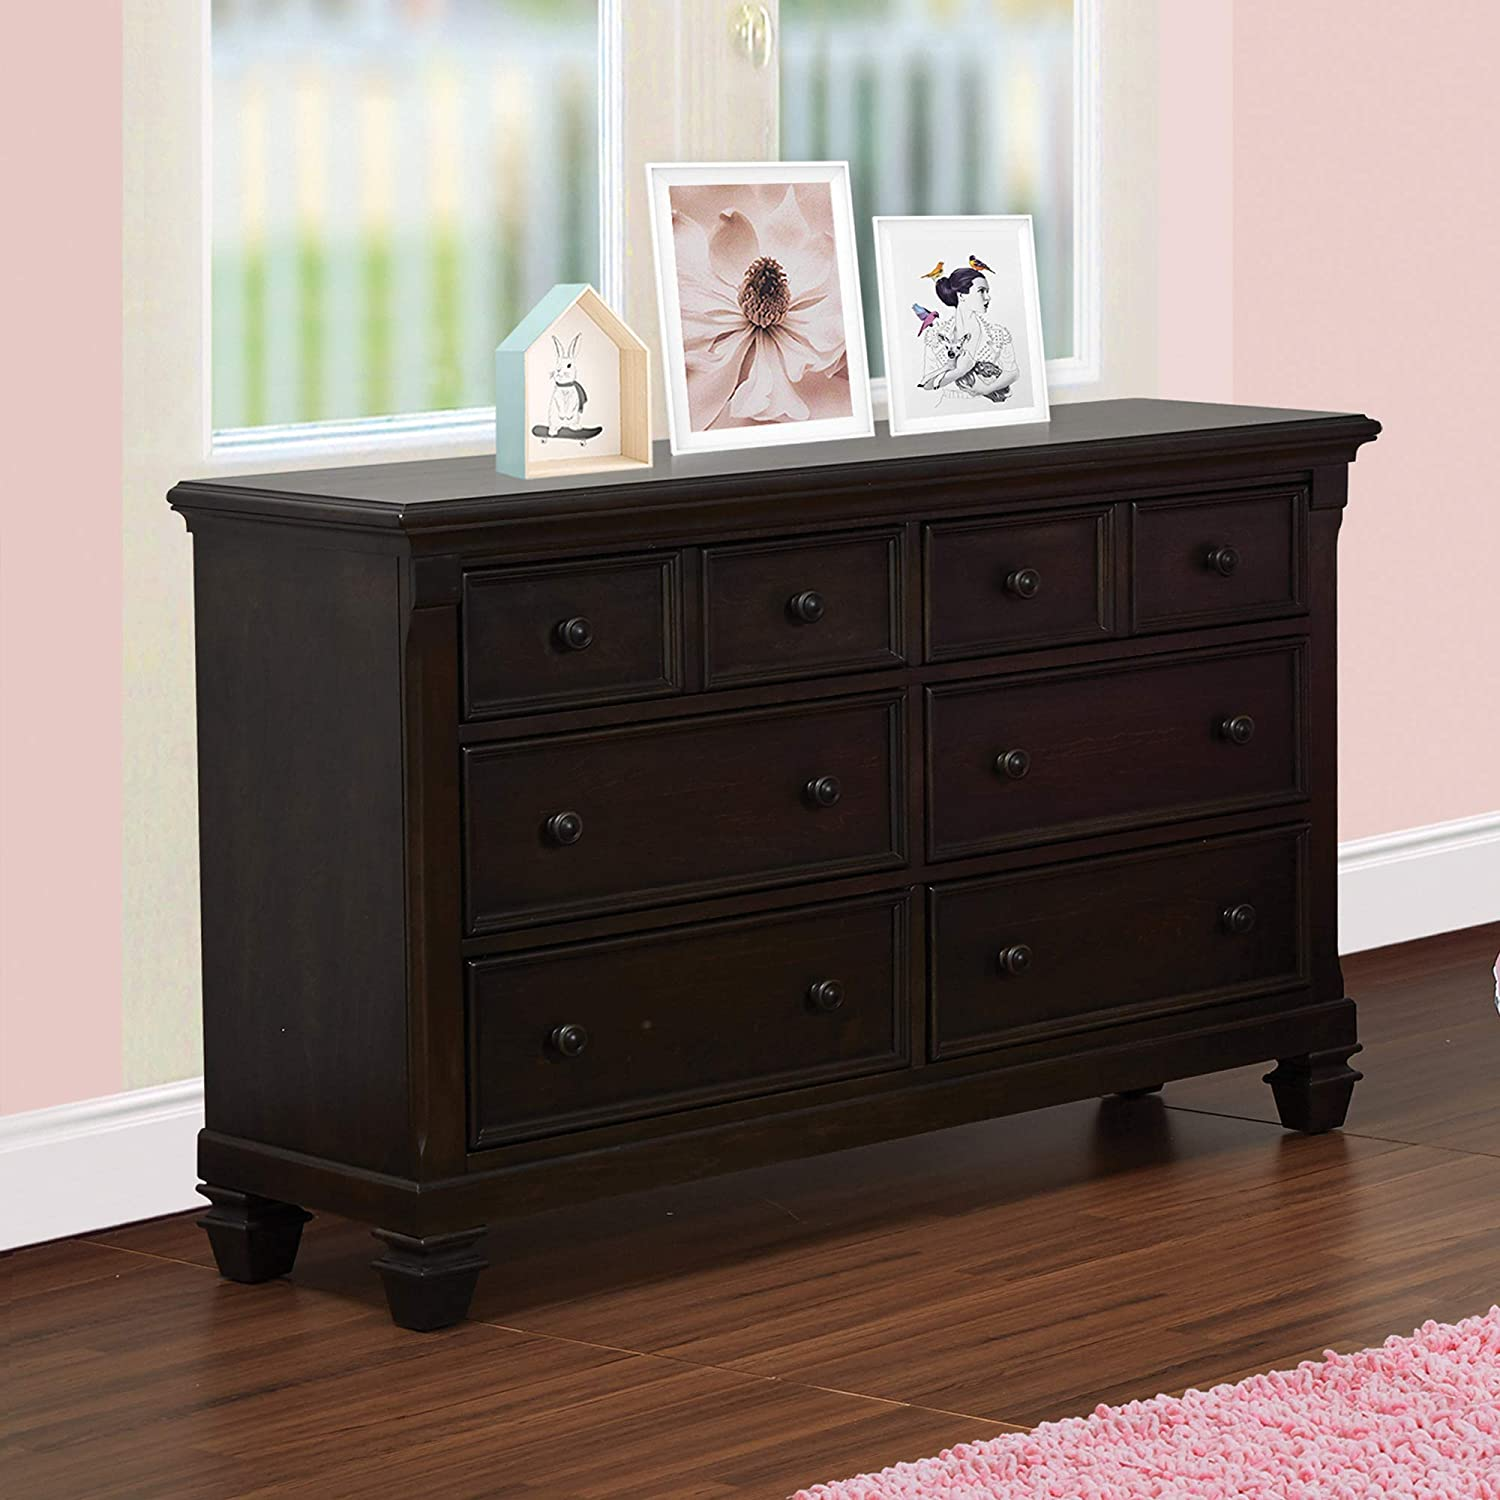 Baby Cache Glendale 6 Drawer Double Dresser, Charcoal Brown